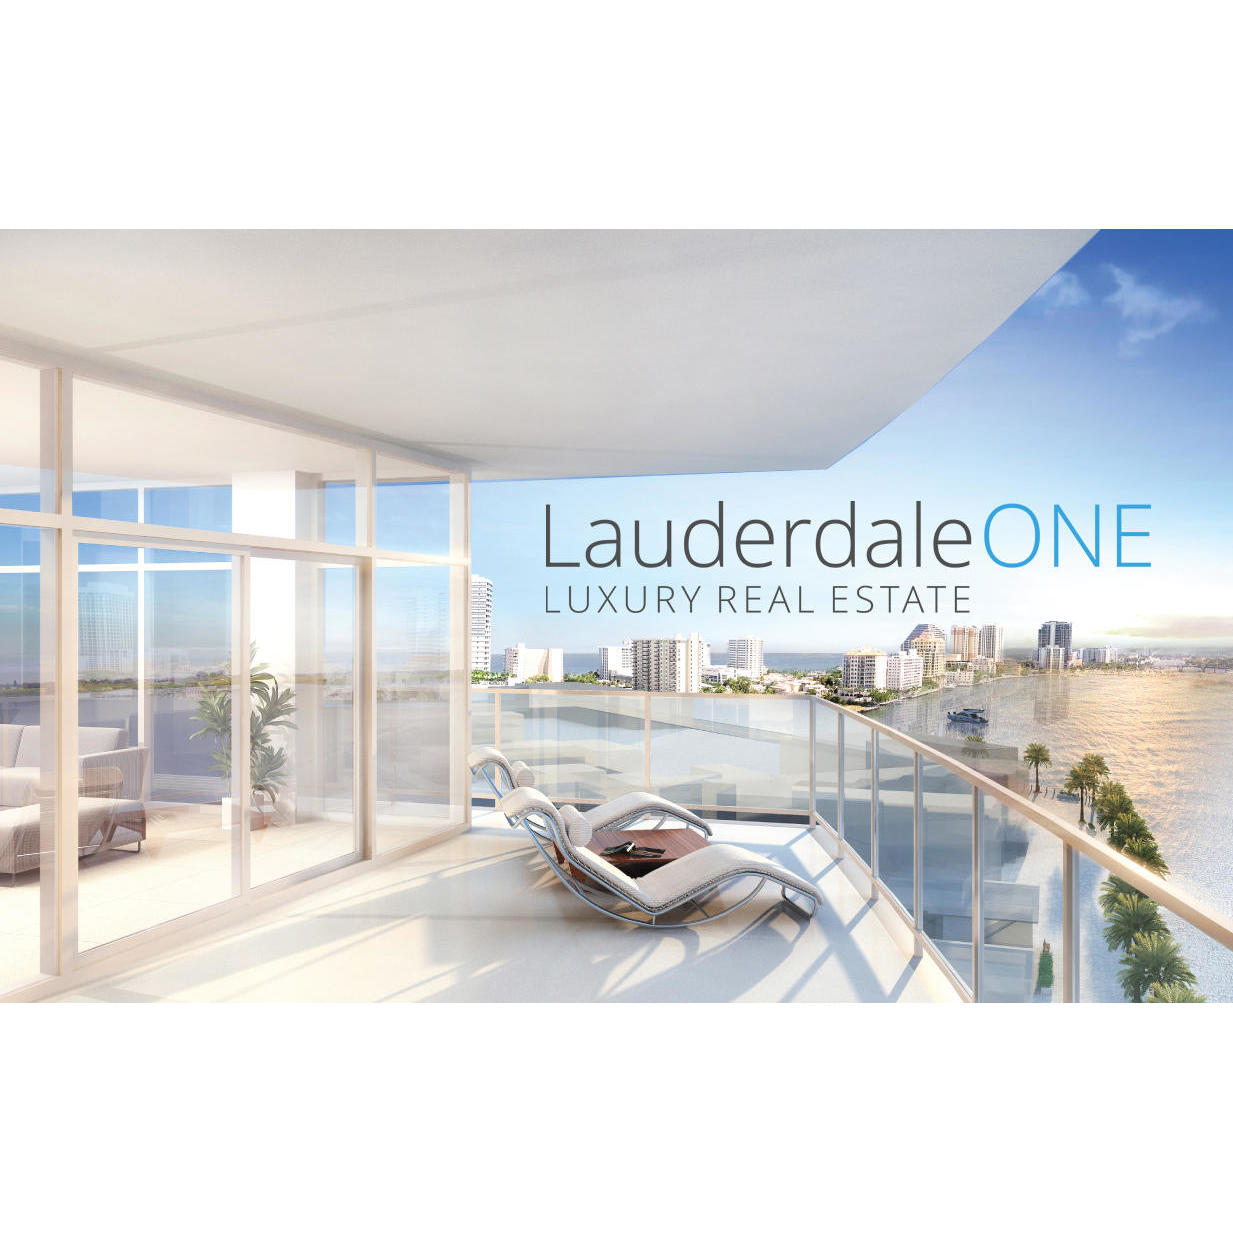 Lauderdale One Luxury Real Estate